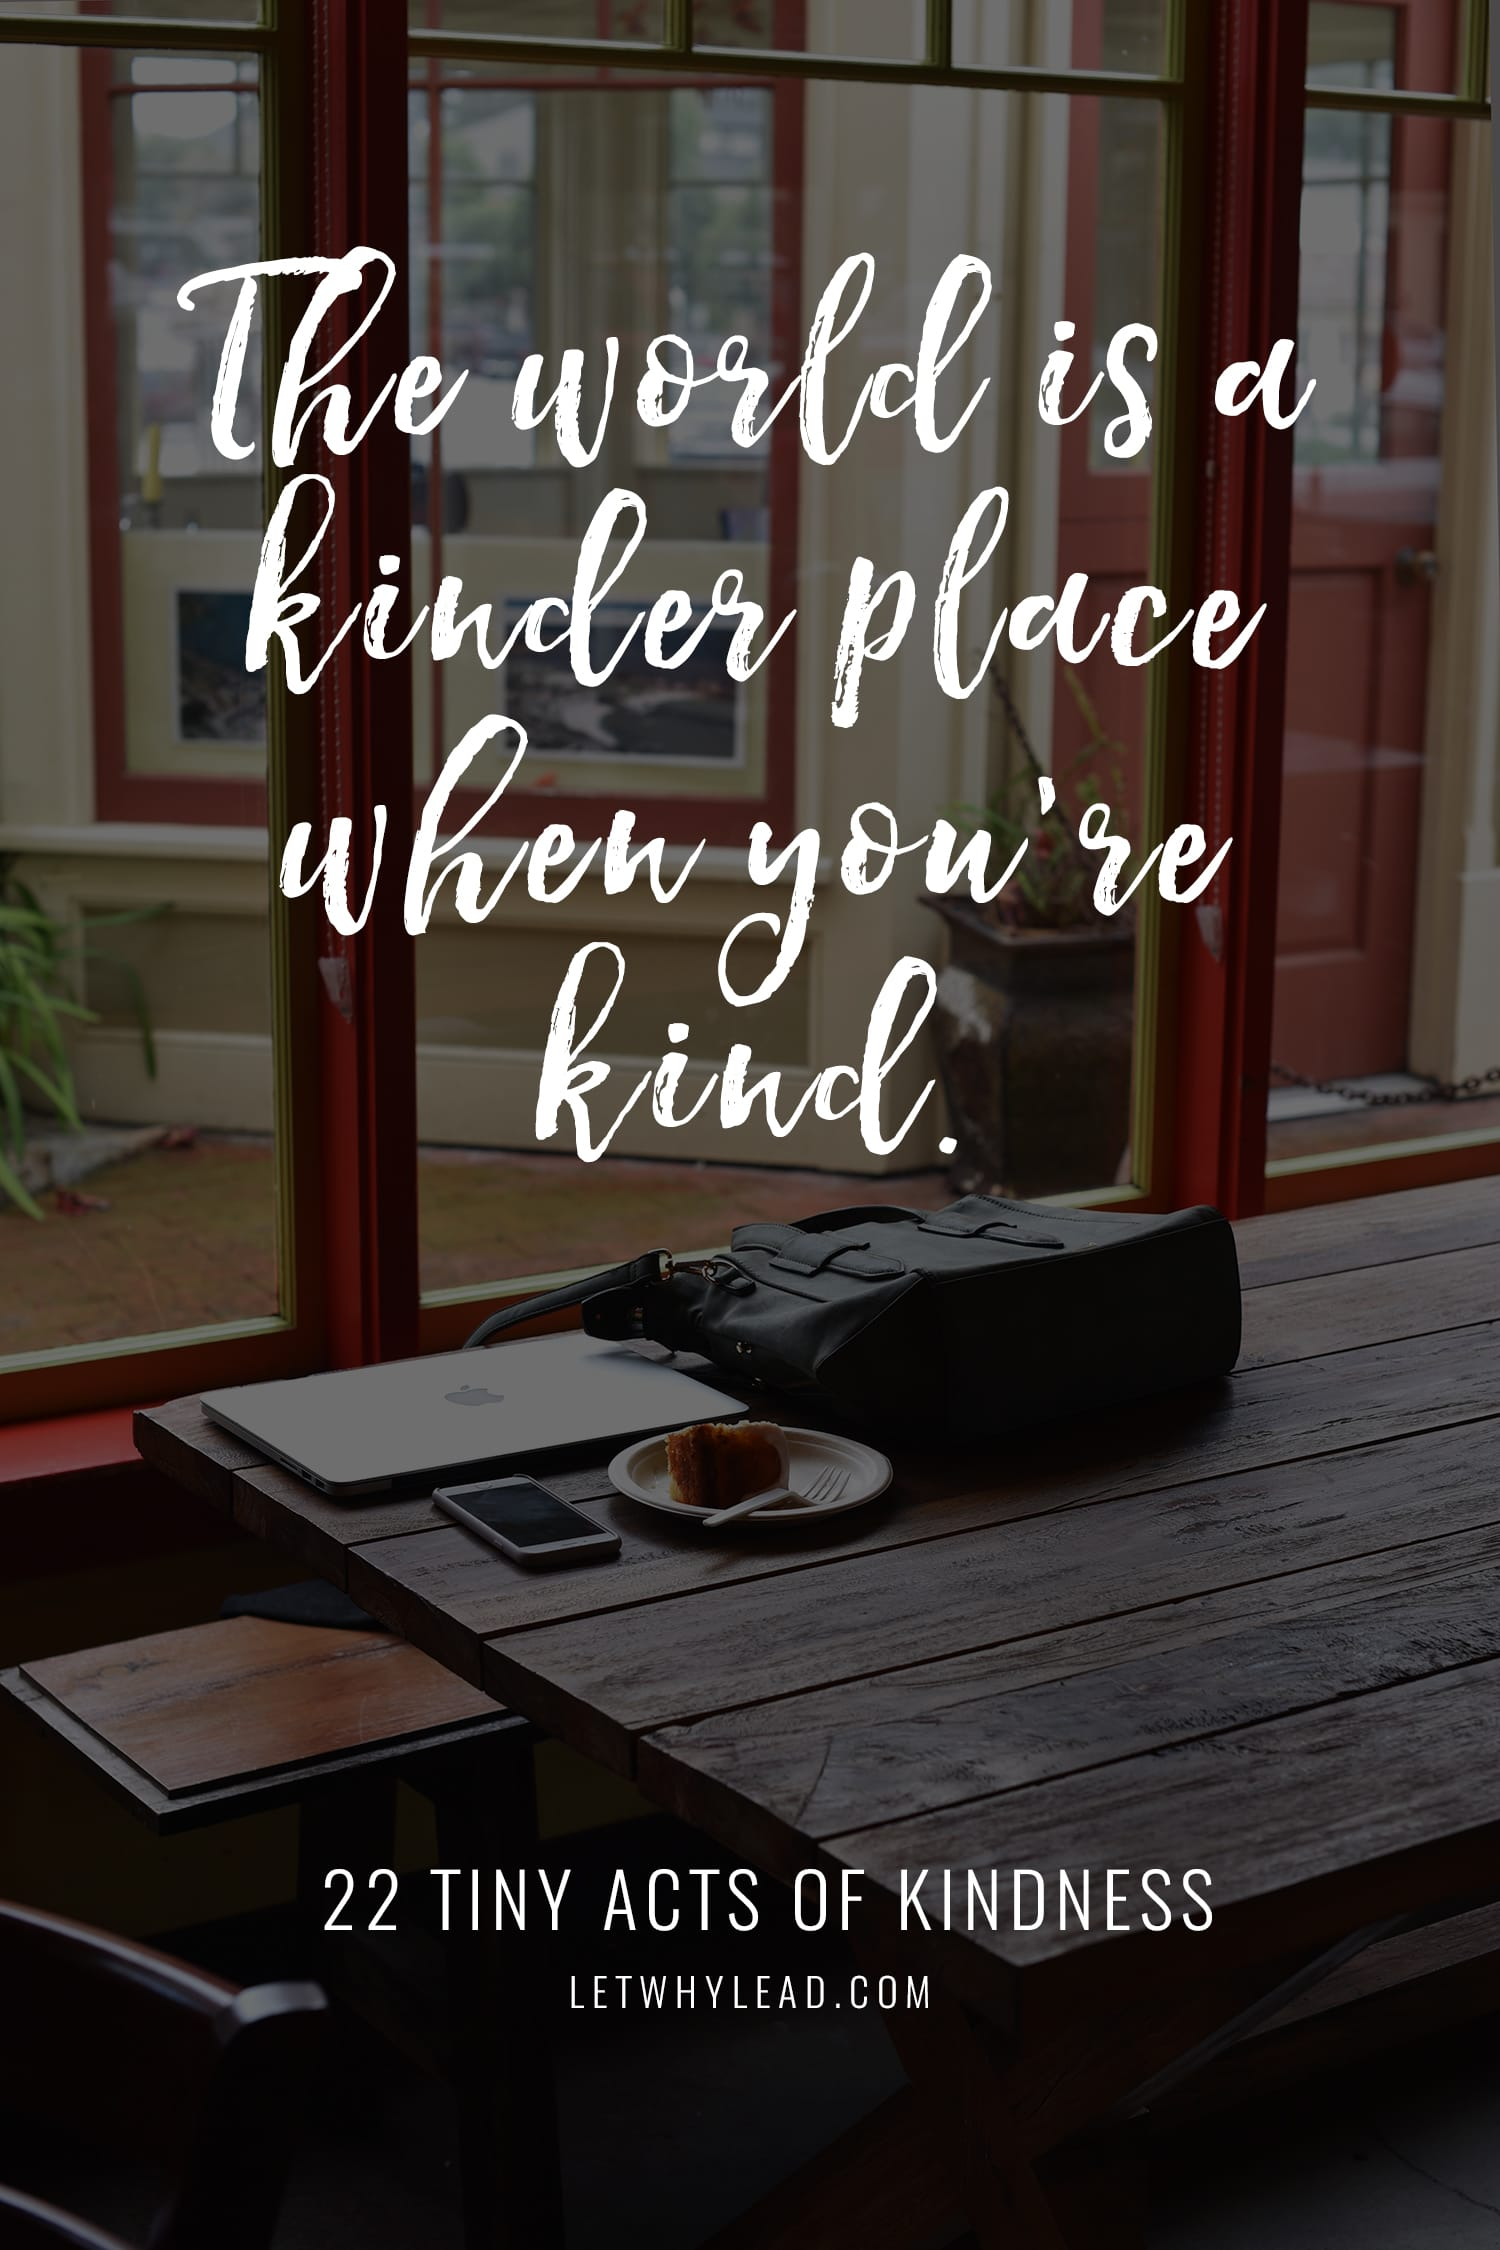 """22 TINY acts of kindness you can do in the middle of your week   """"The world is a kinder place when you're kind."""" unknown"""